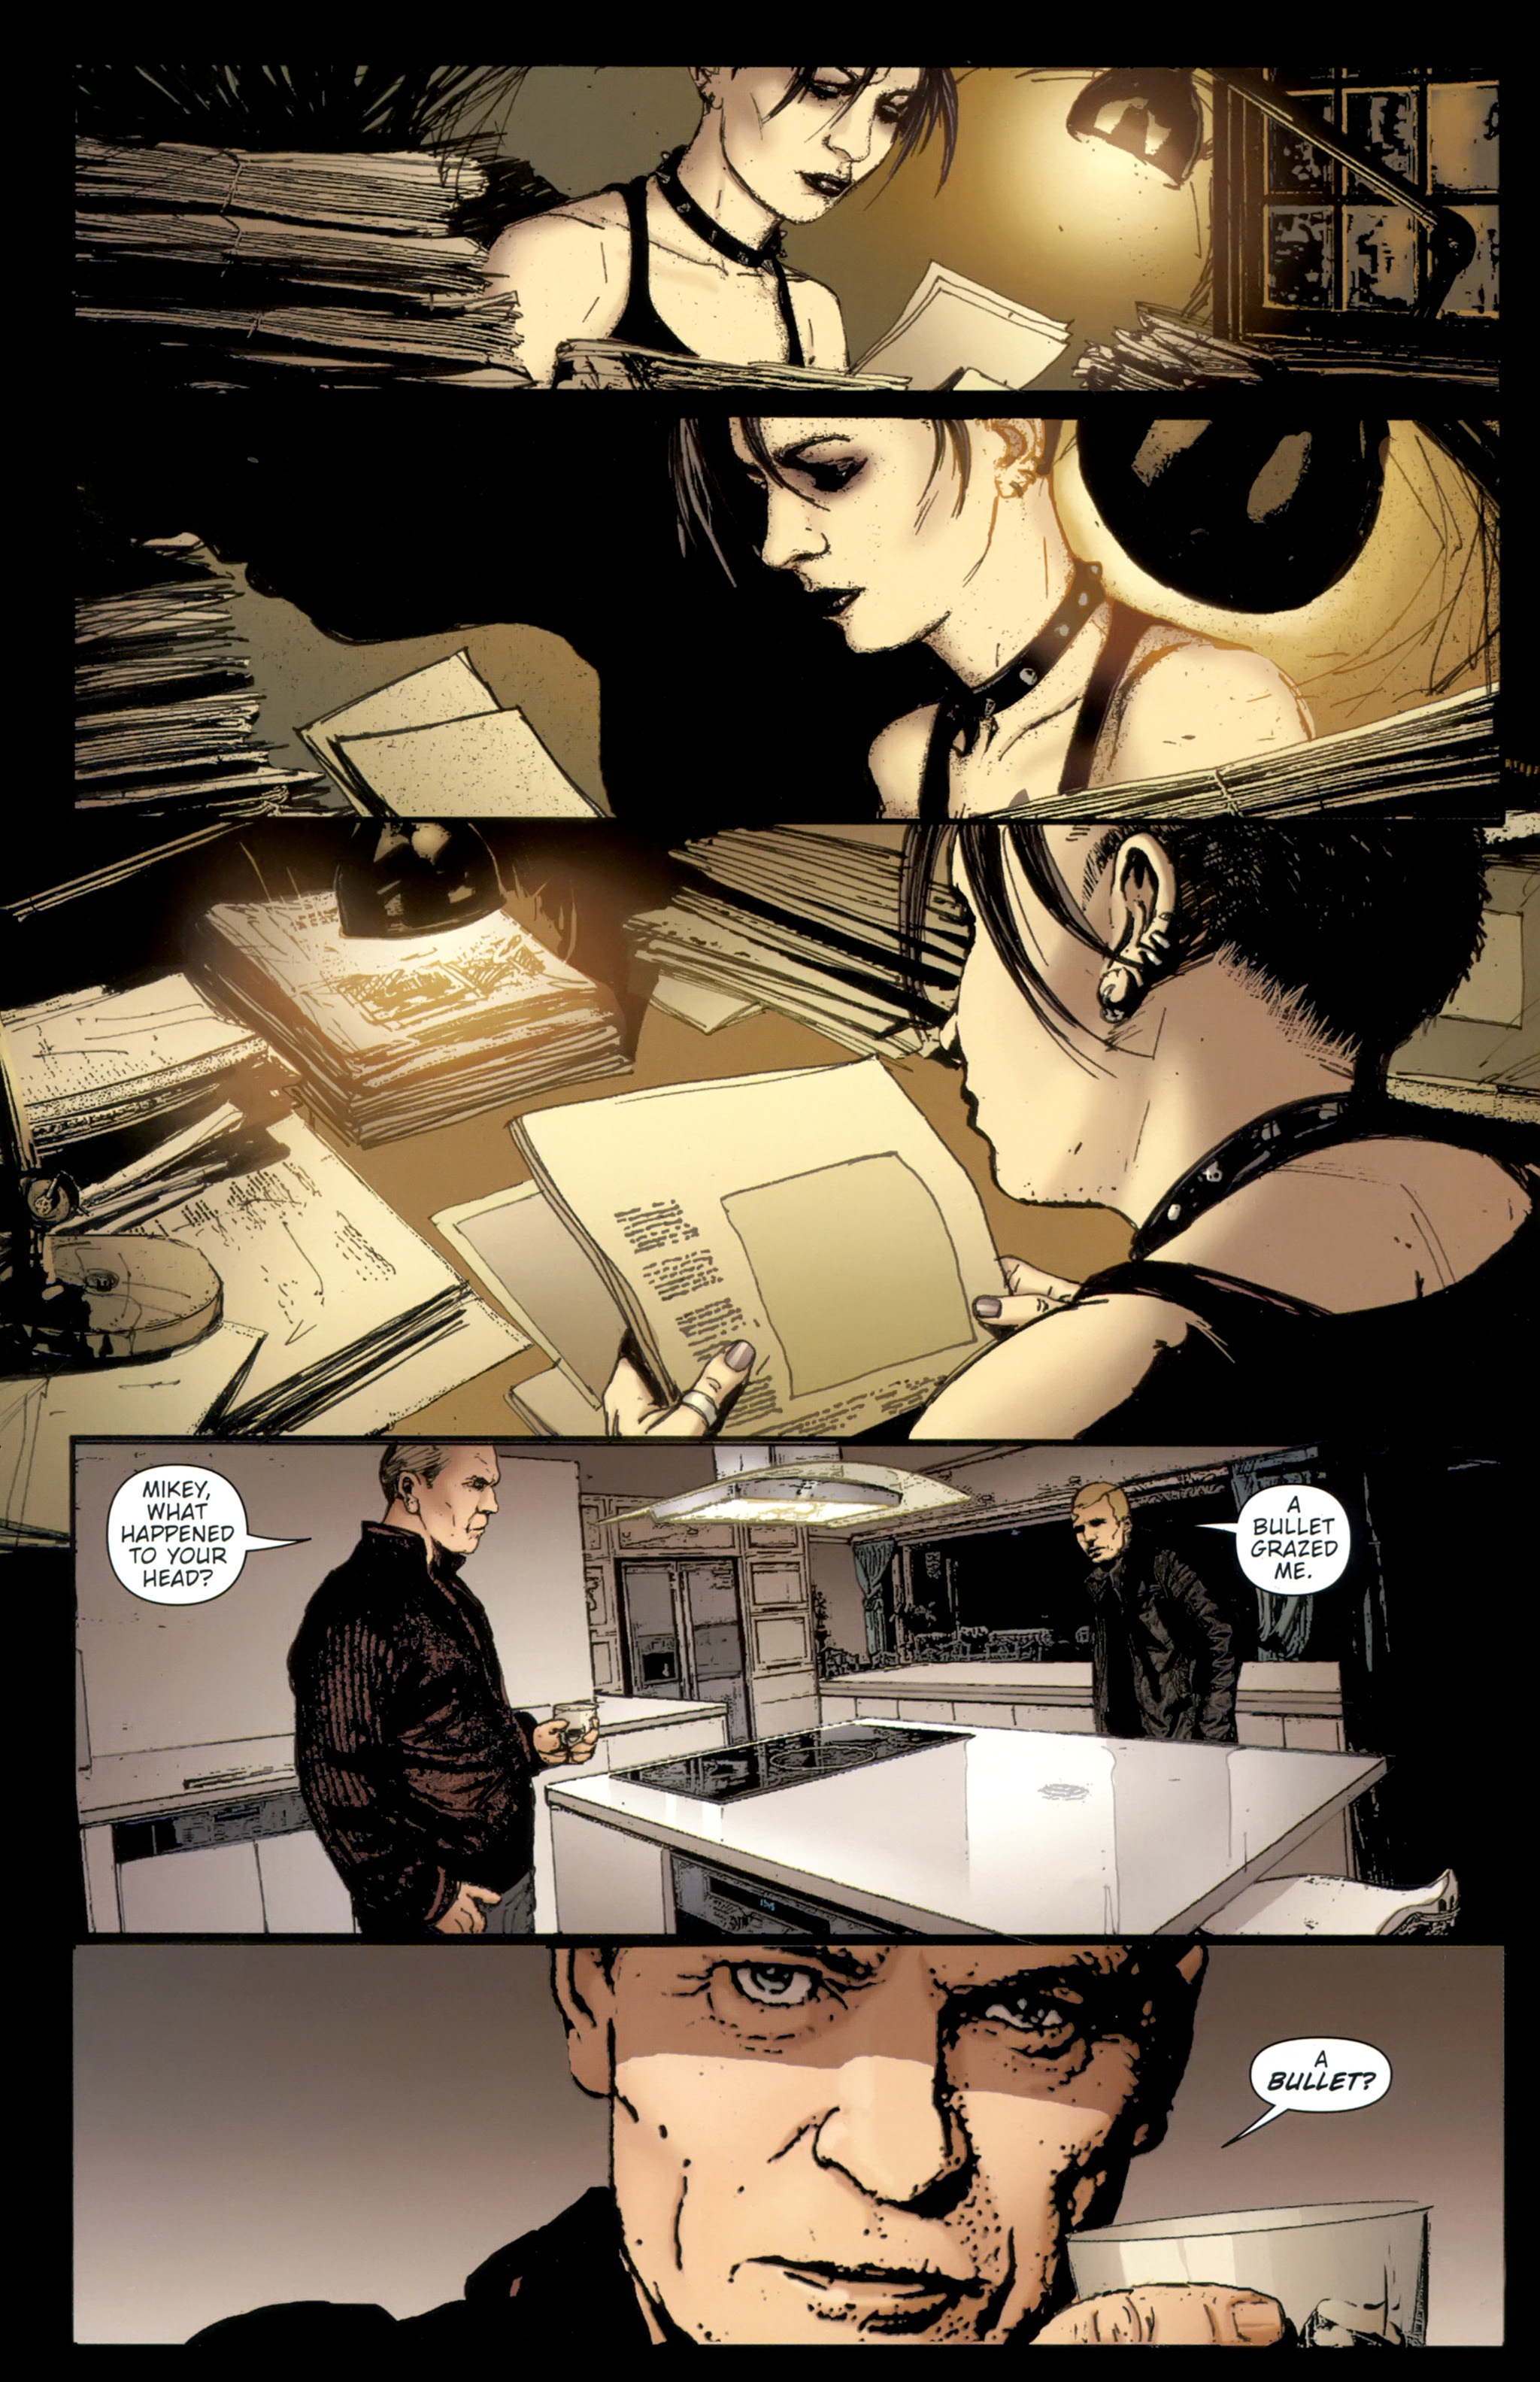 Read online The Girl With the Dragon Tattoo comic -  Issue # TPB 2 - 80